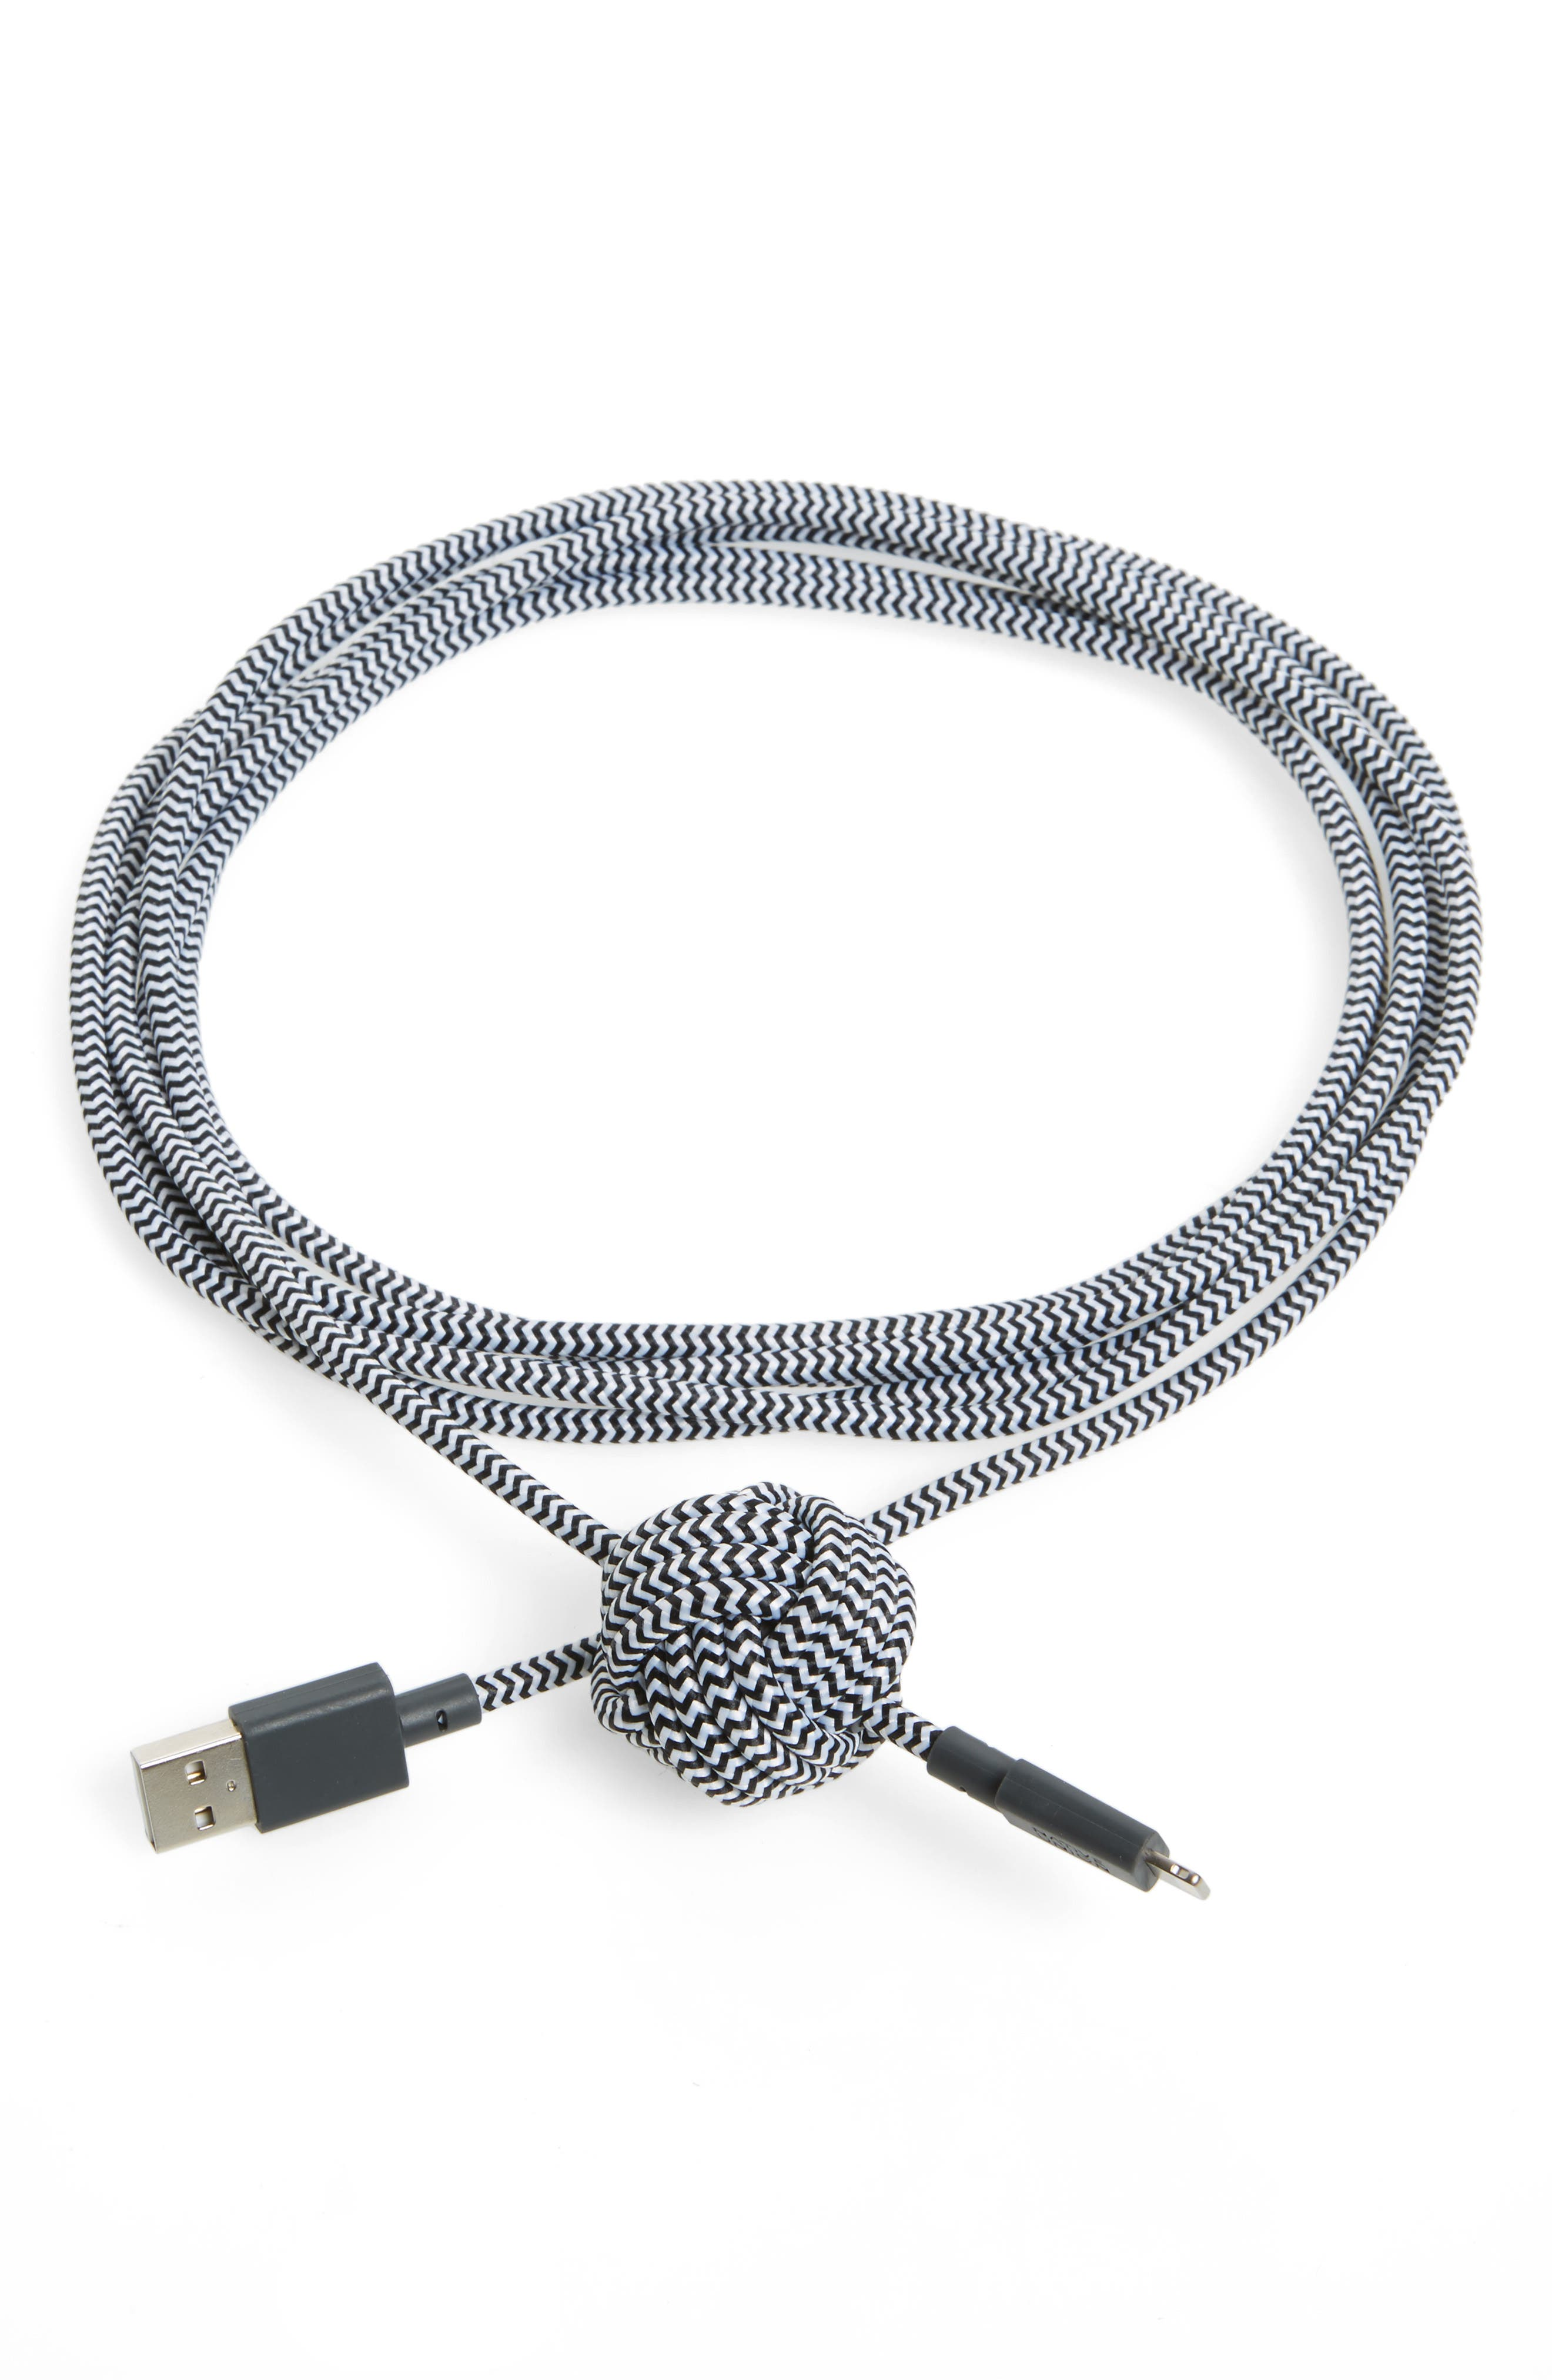 Alternate Image 1 Selected - Native Union Night Lightning Cable